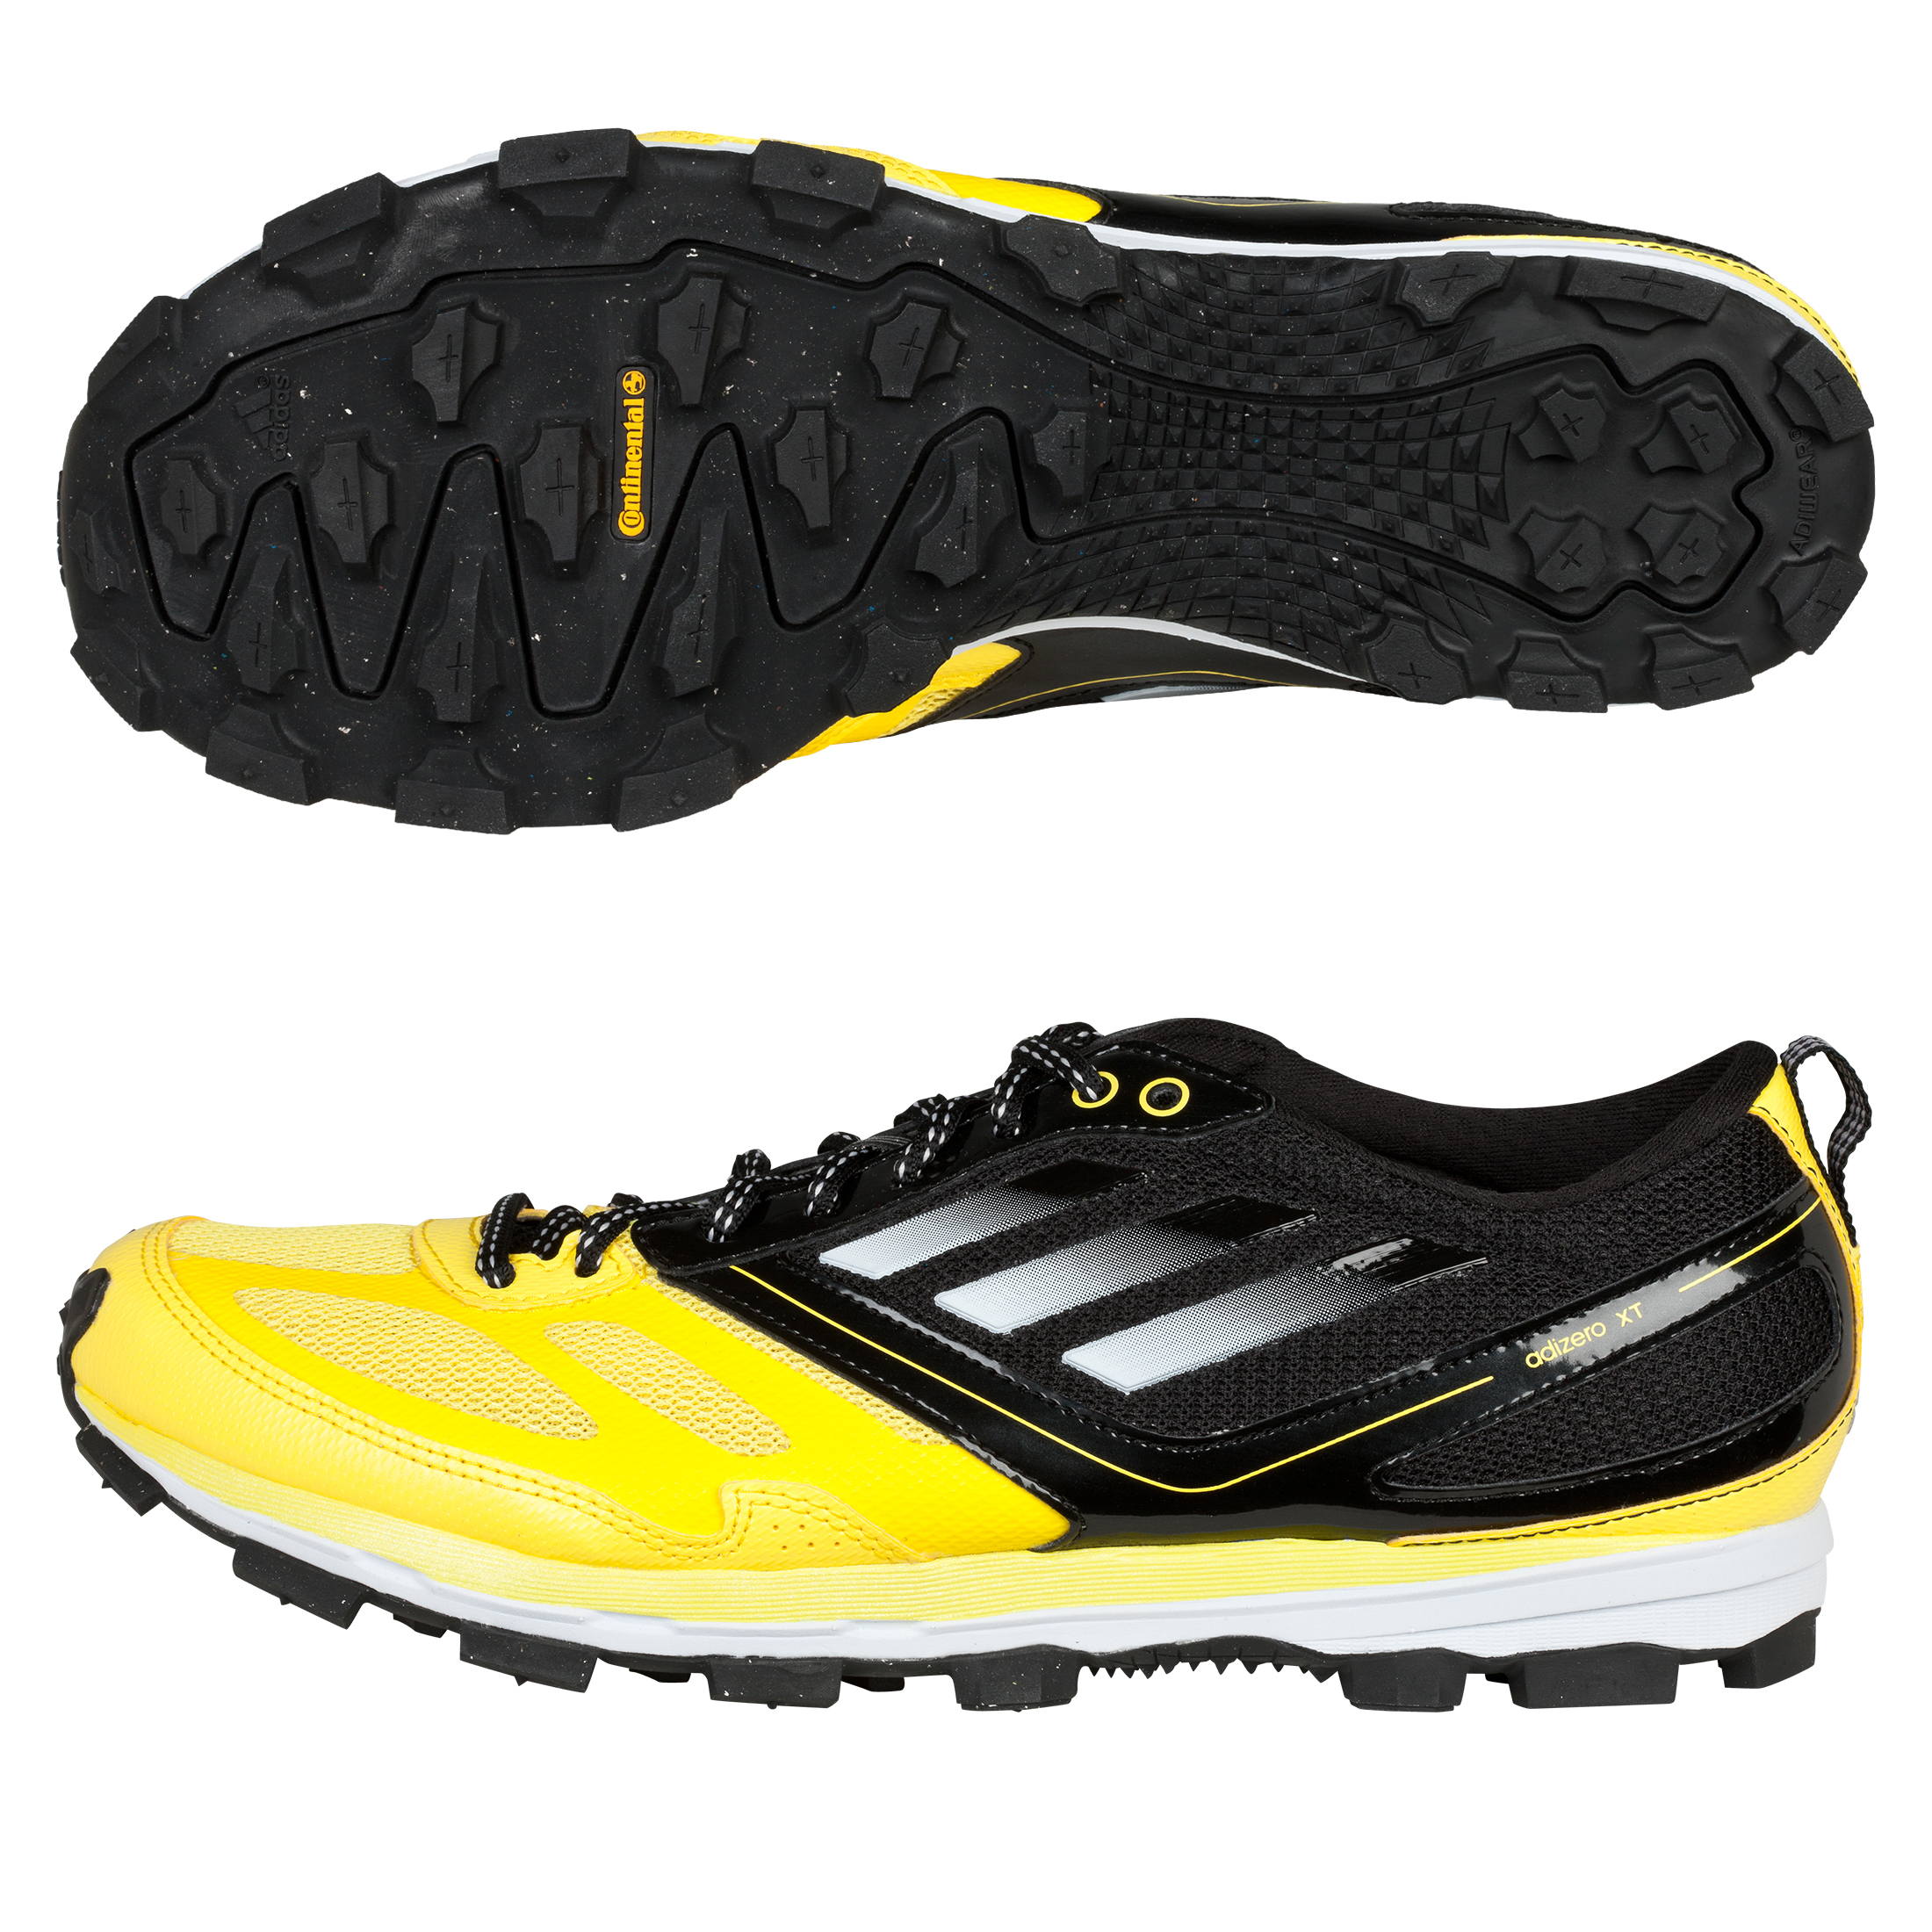 Adidas Adizero XT 4 Running Trainers - Vivid Yellow/Running White/Black